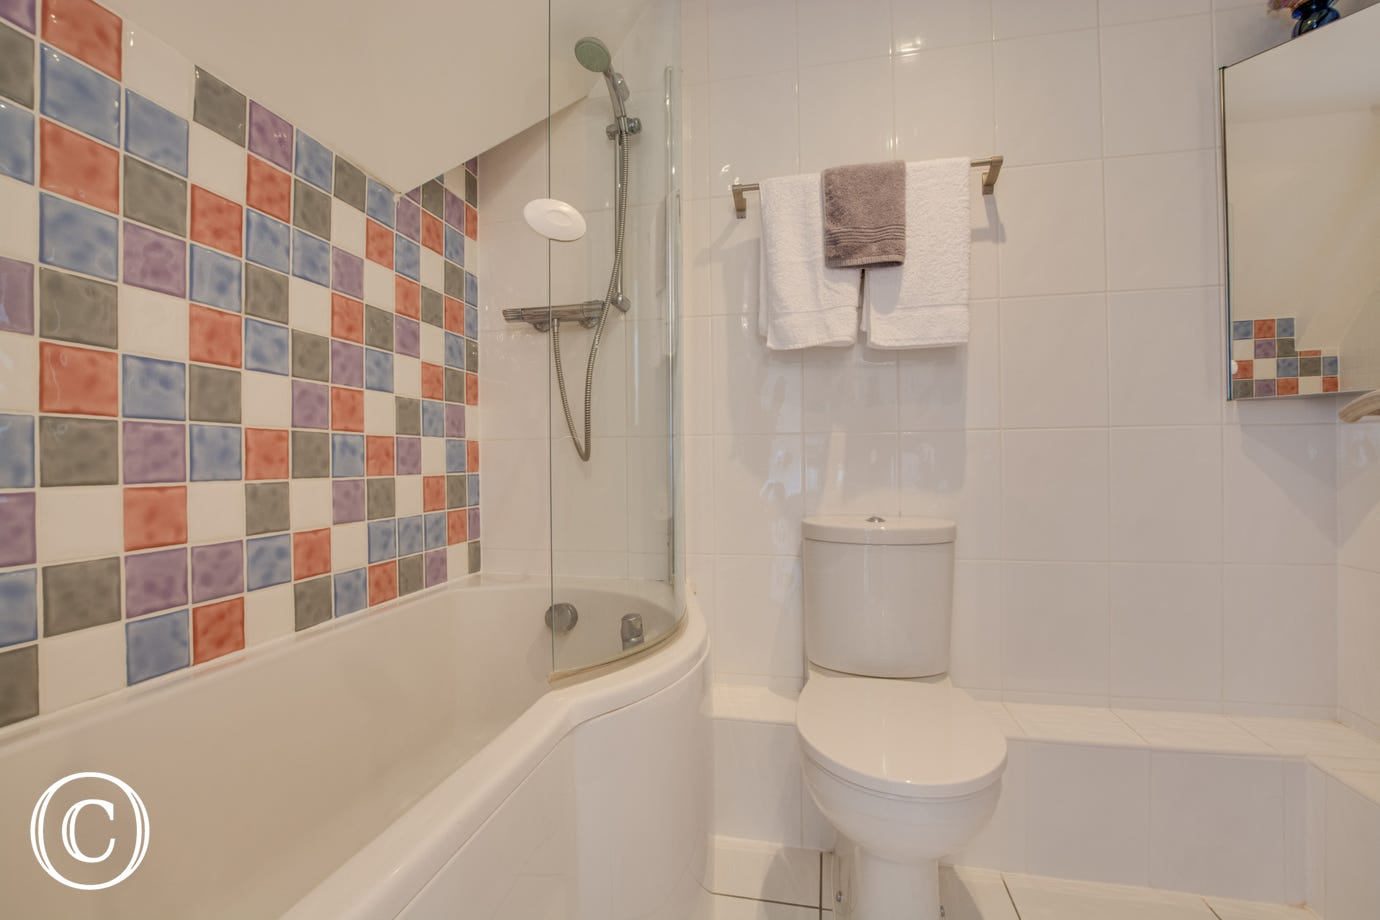 Ensuite bathroom with bath, overhead shower toilet and wash hand basin